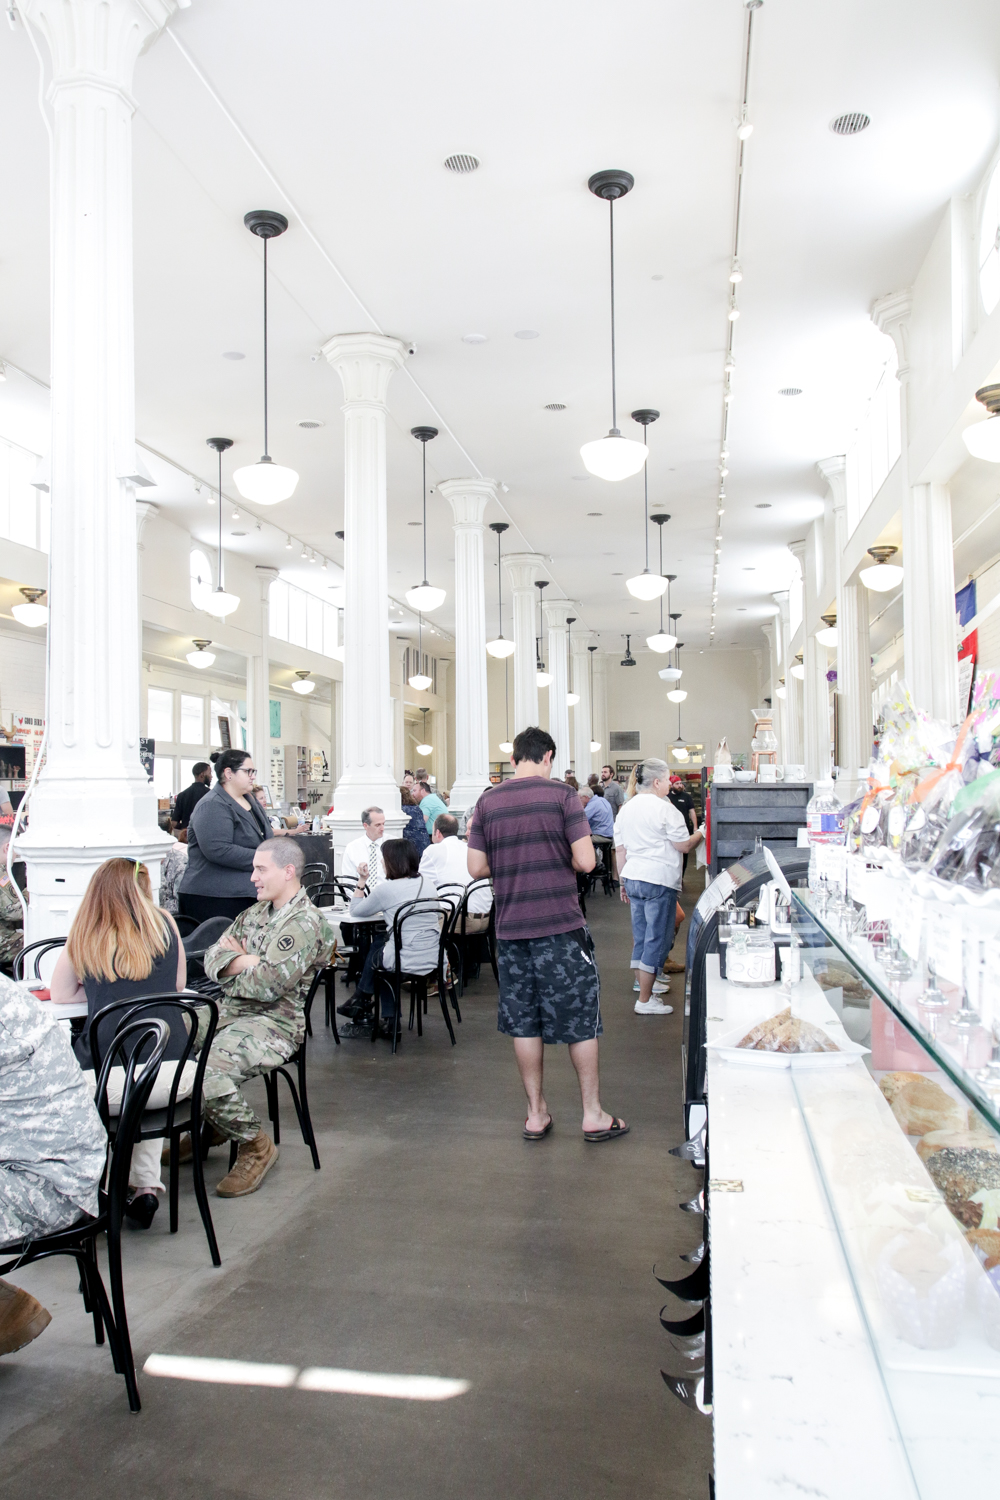 So much goodness to be had at the St. Roch Market food hall in the historic St. Roch neighborhood of New Orleans, LA.